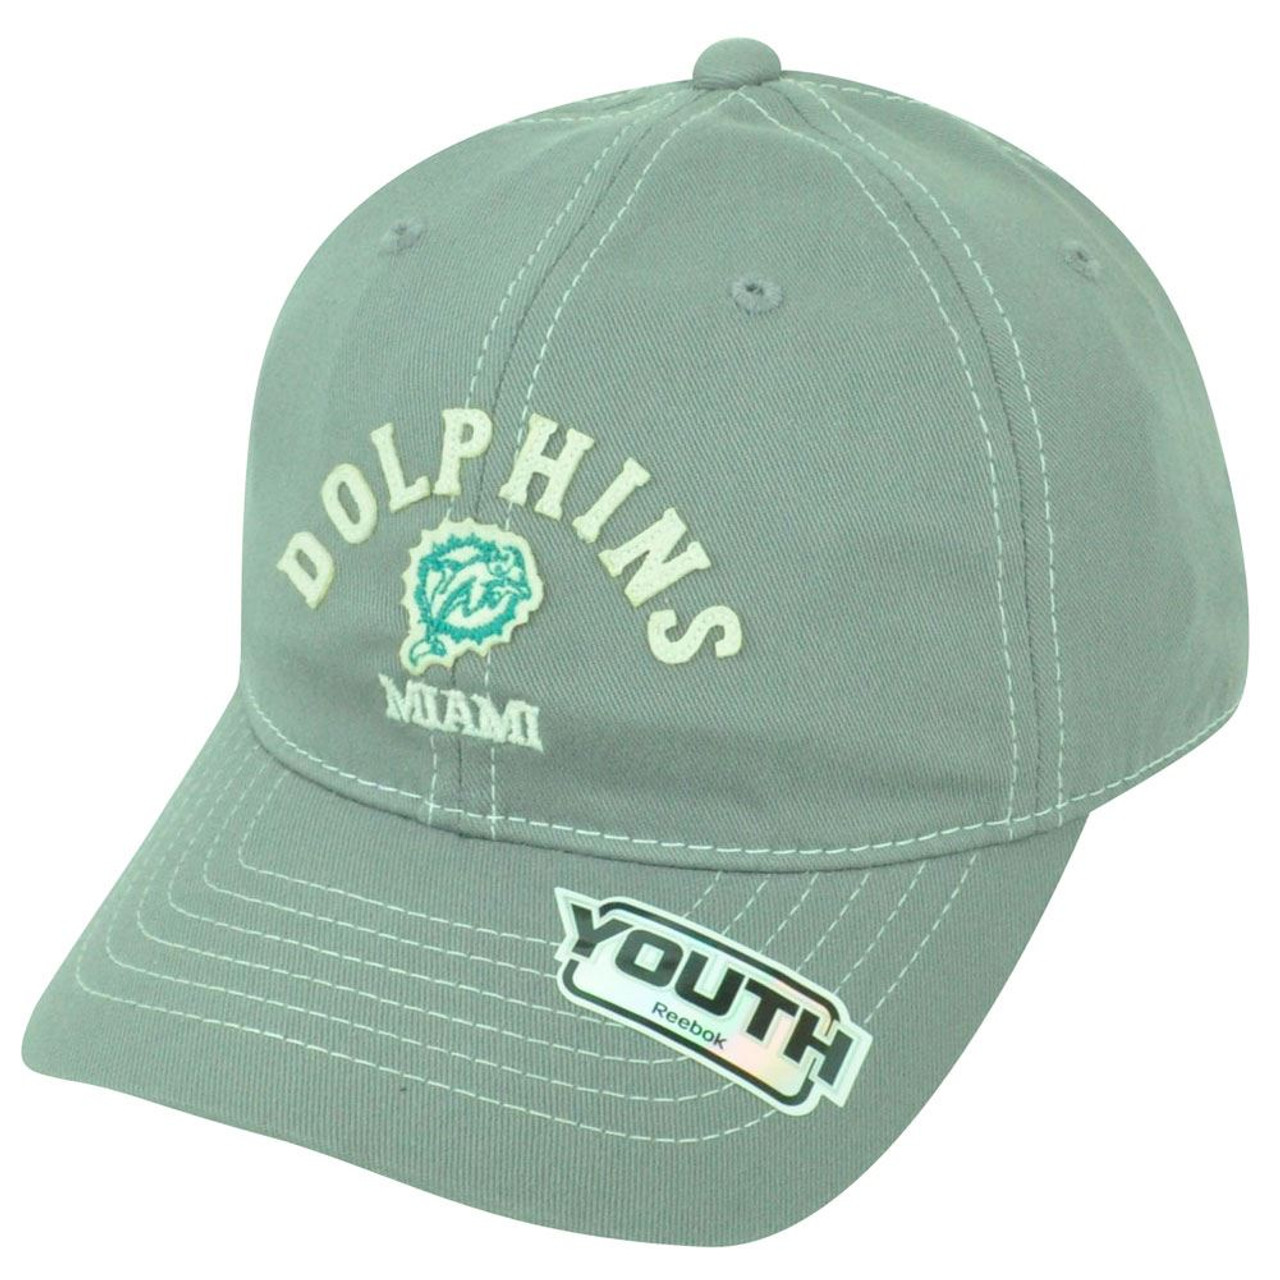 NFL Miami Dolphins Reebok Youth Adjustable Authentic Gray Cap Hat DH1460 c86fe9e16